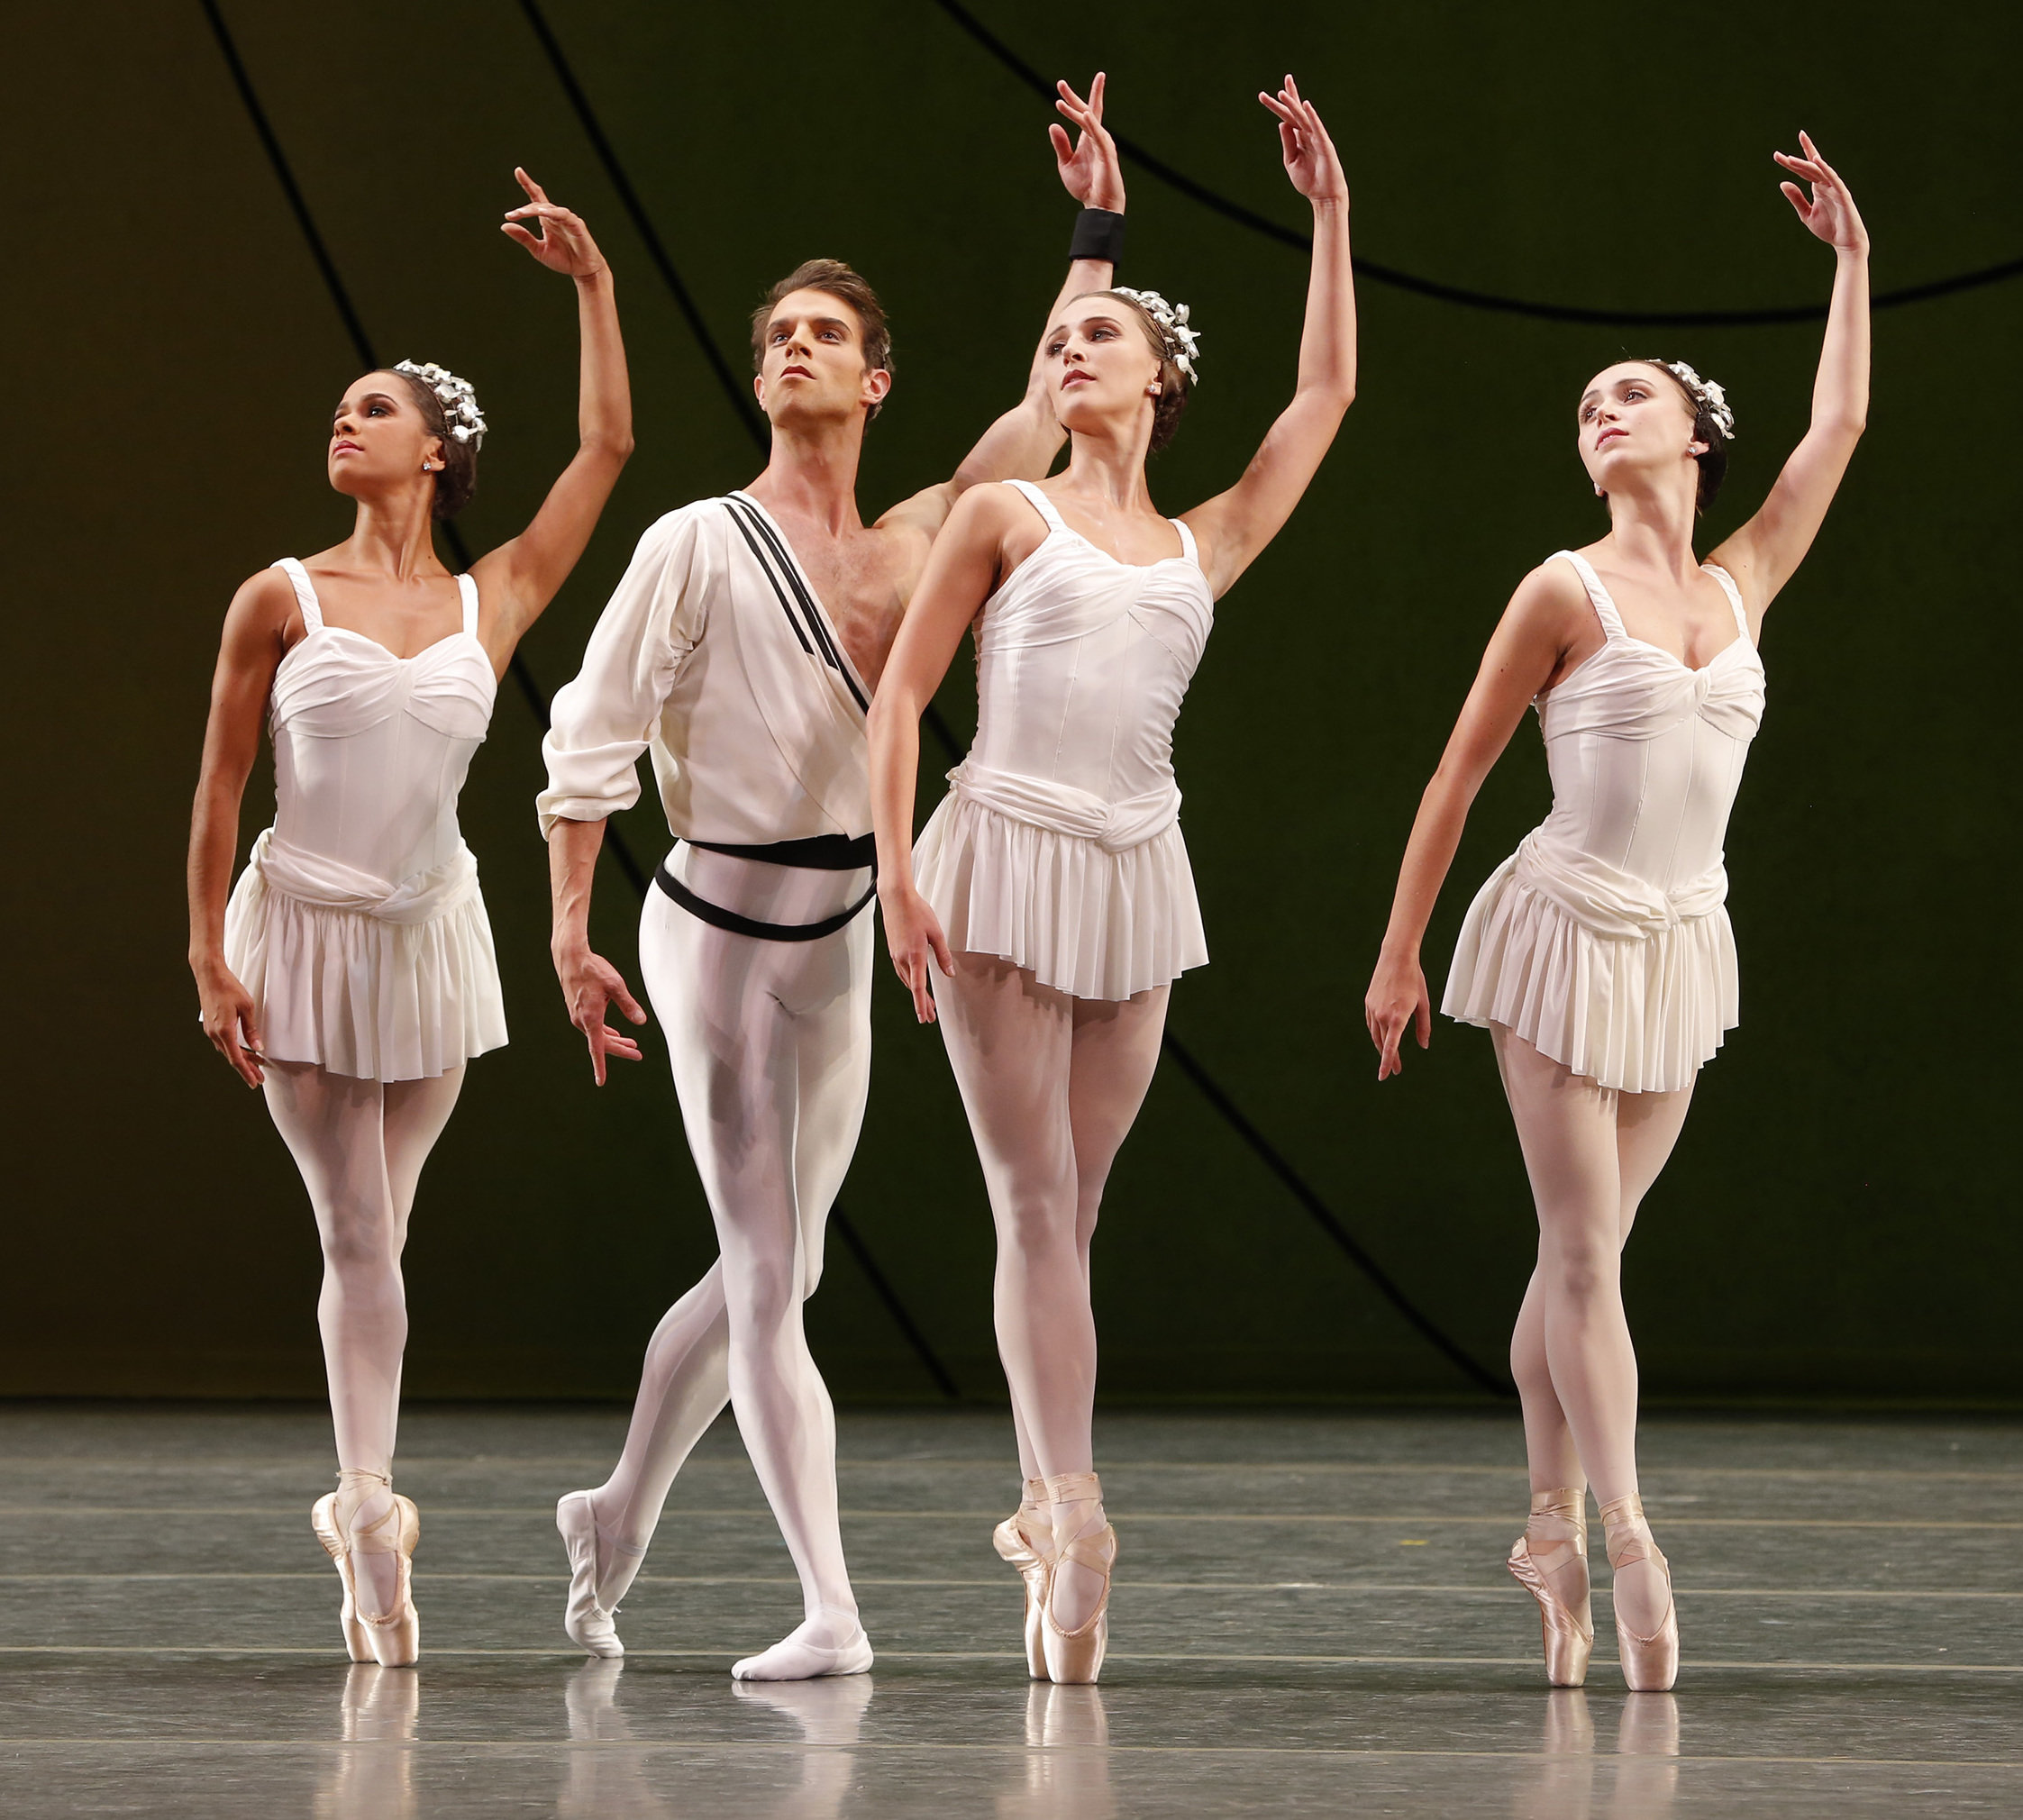 Misty Copeland, James Whiteside, Devon Teuscher and Skylar Brandt in Symphonic Variations. Photo: Marty Sohl.